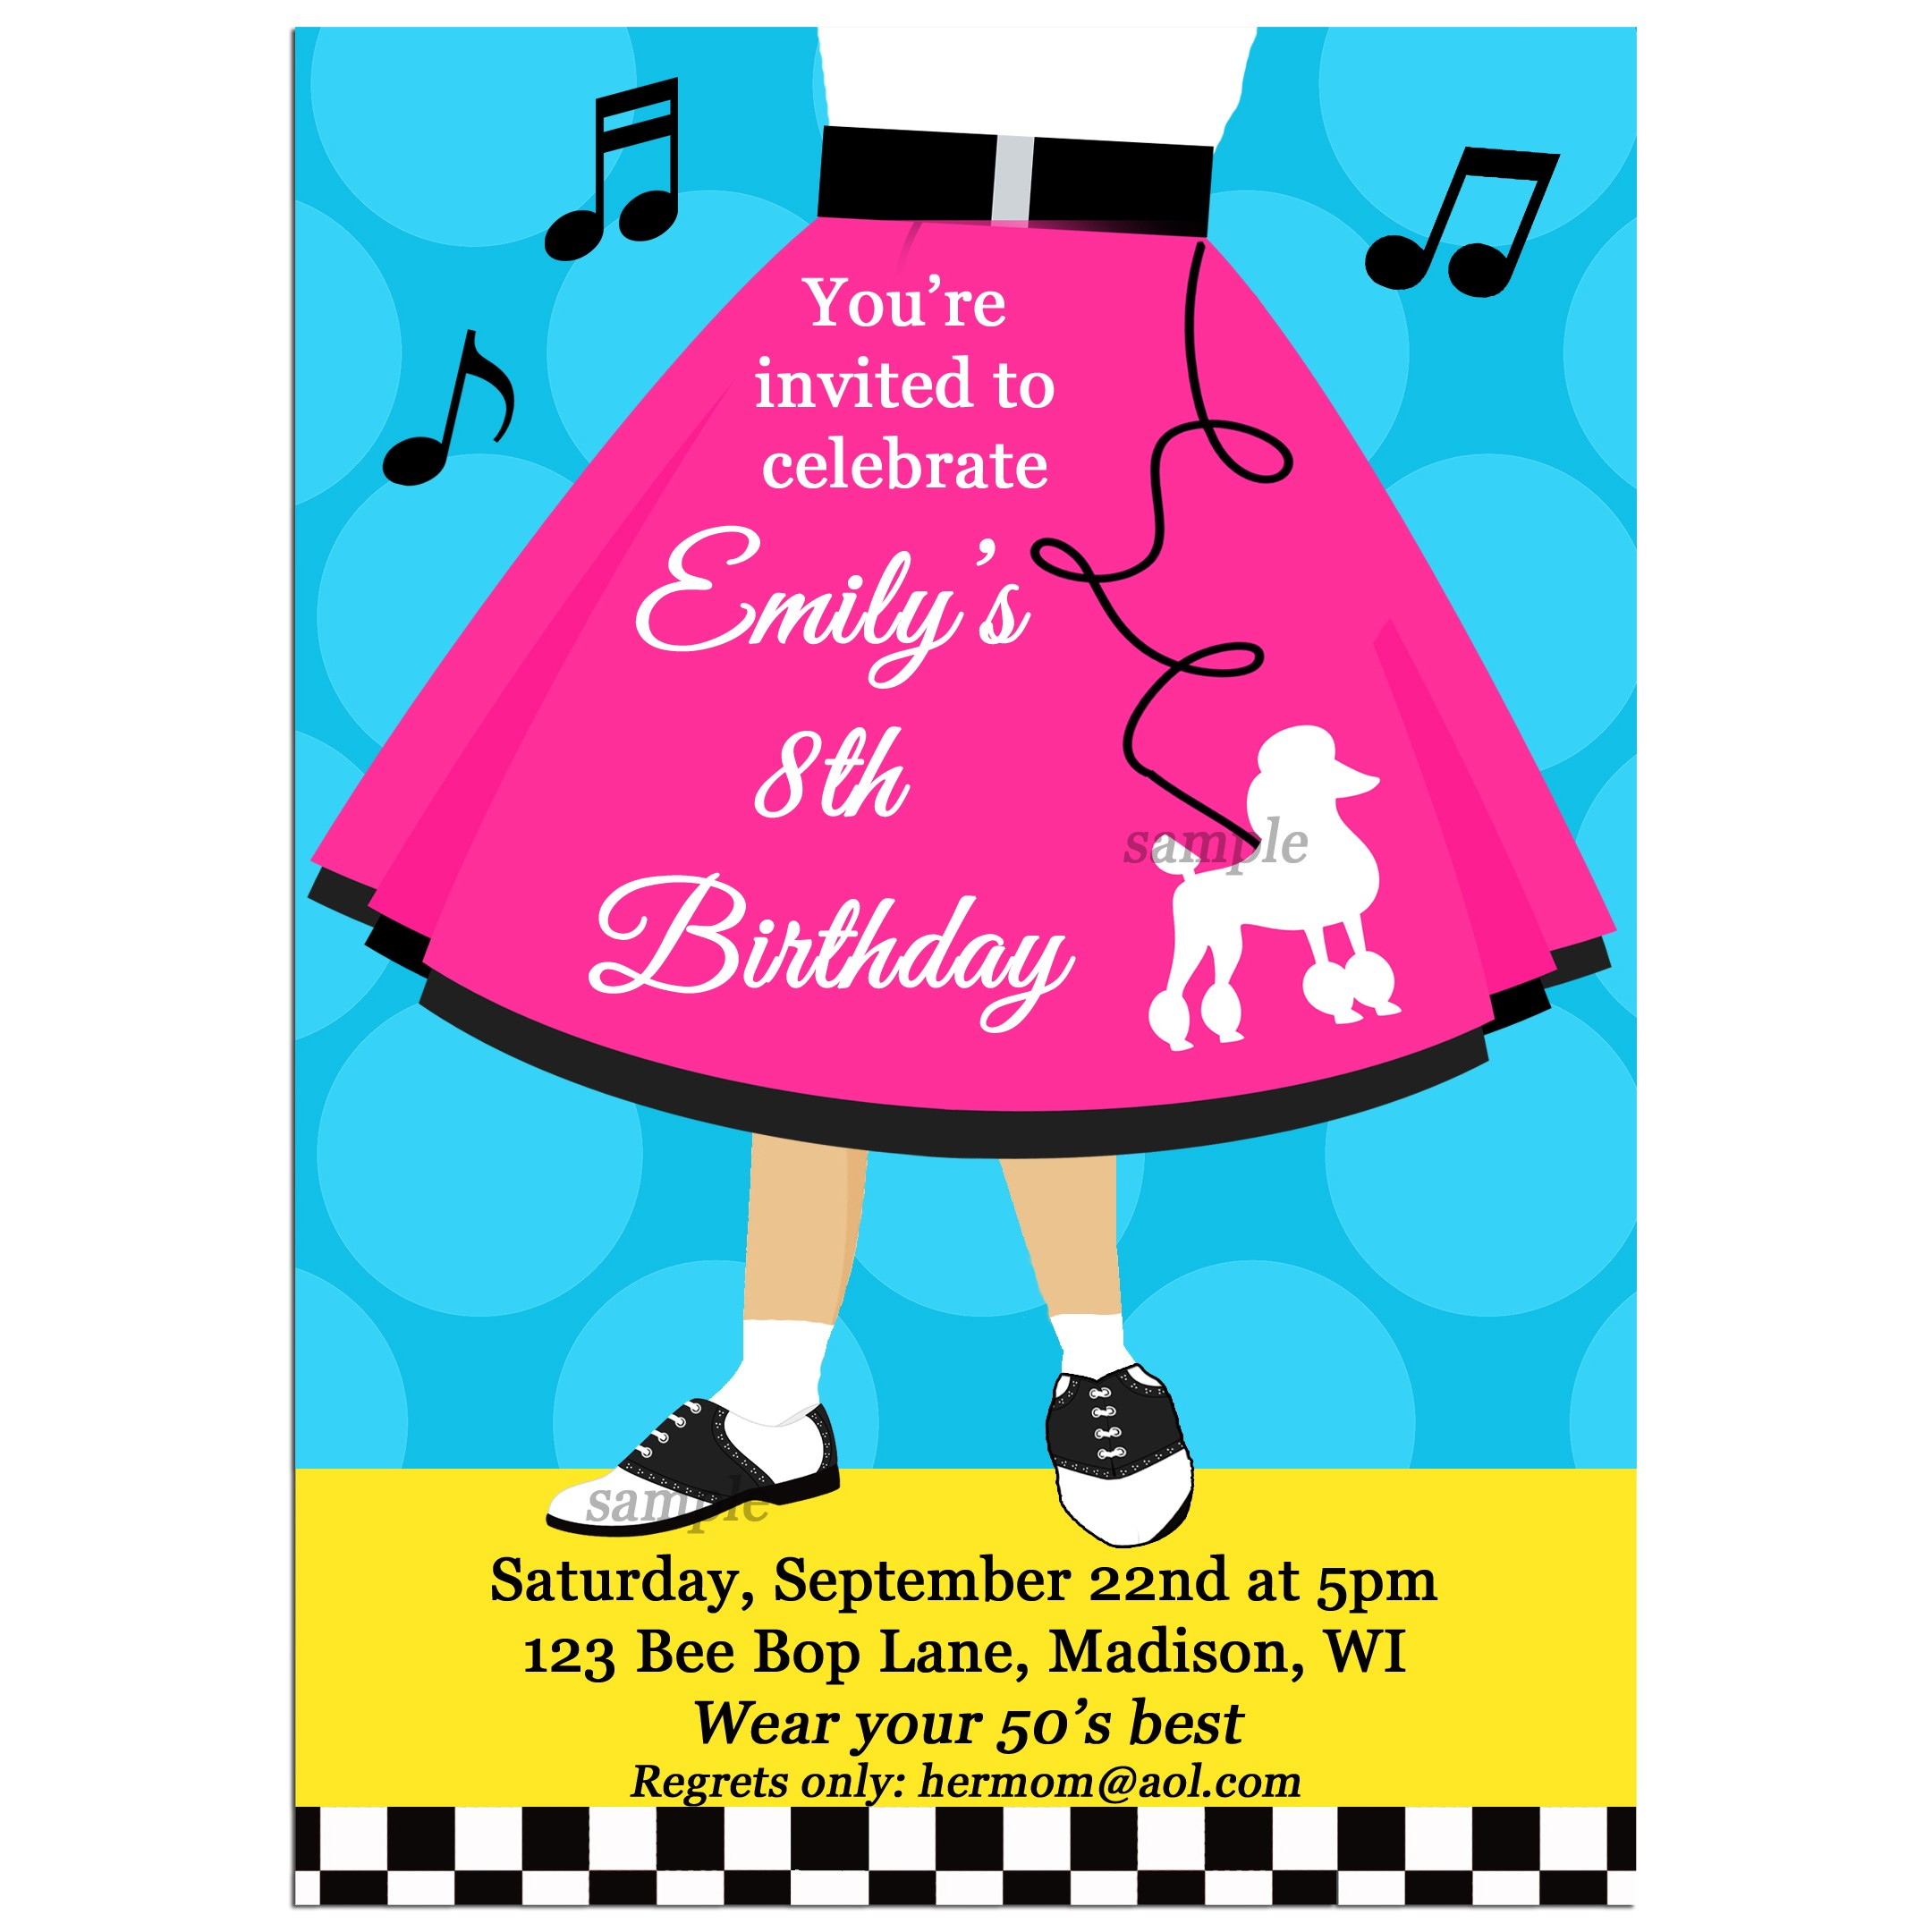 Fifties Sock Hop Party Invitation By That Party Chick Poodle Skirt